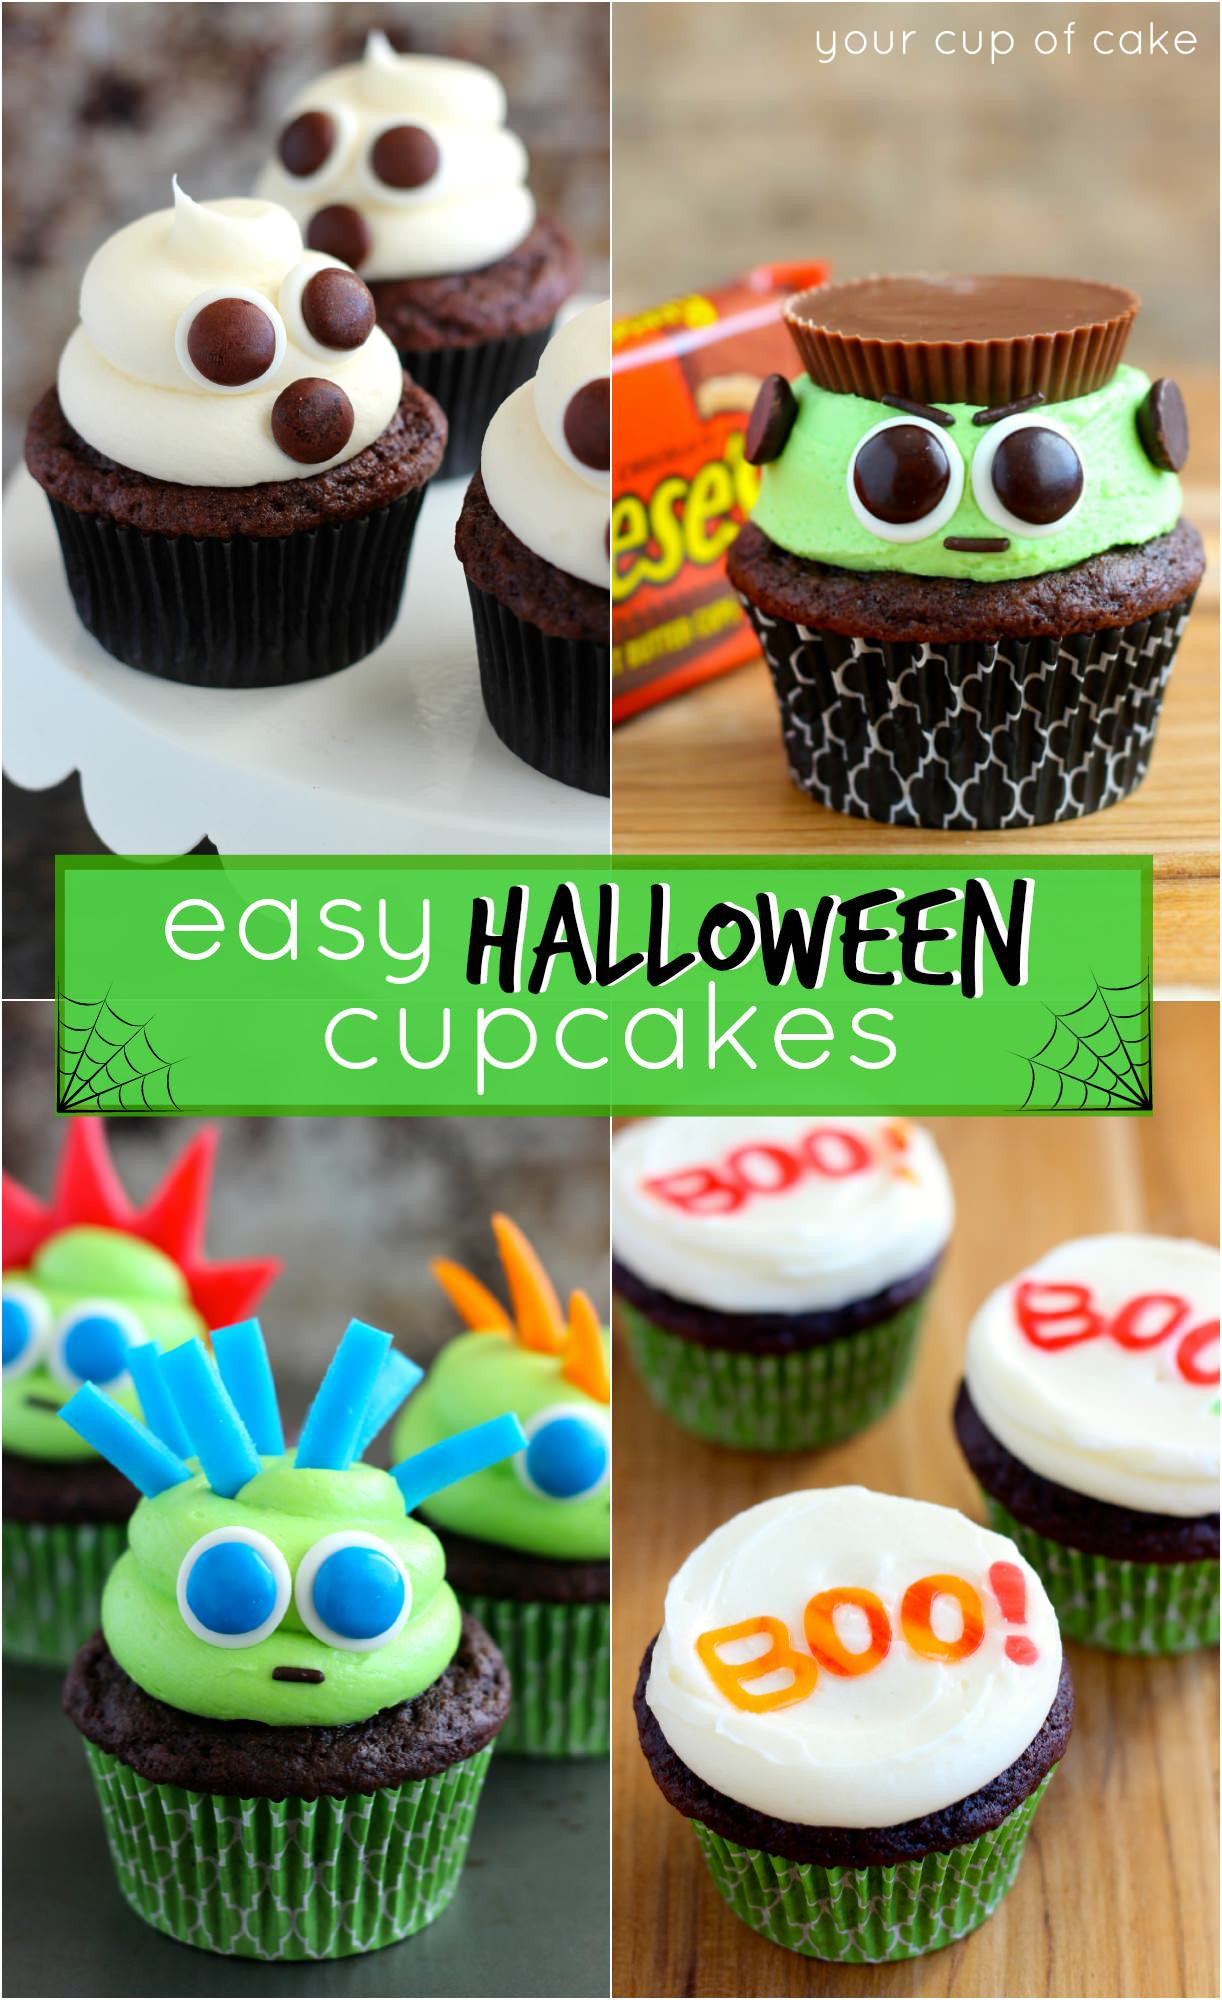 Cute Halloween Cupcakes  Easy Halloween Cupcake Ideas Your Cup of Cake